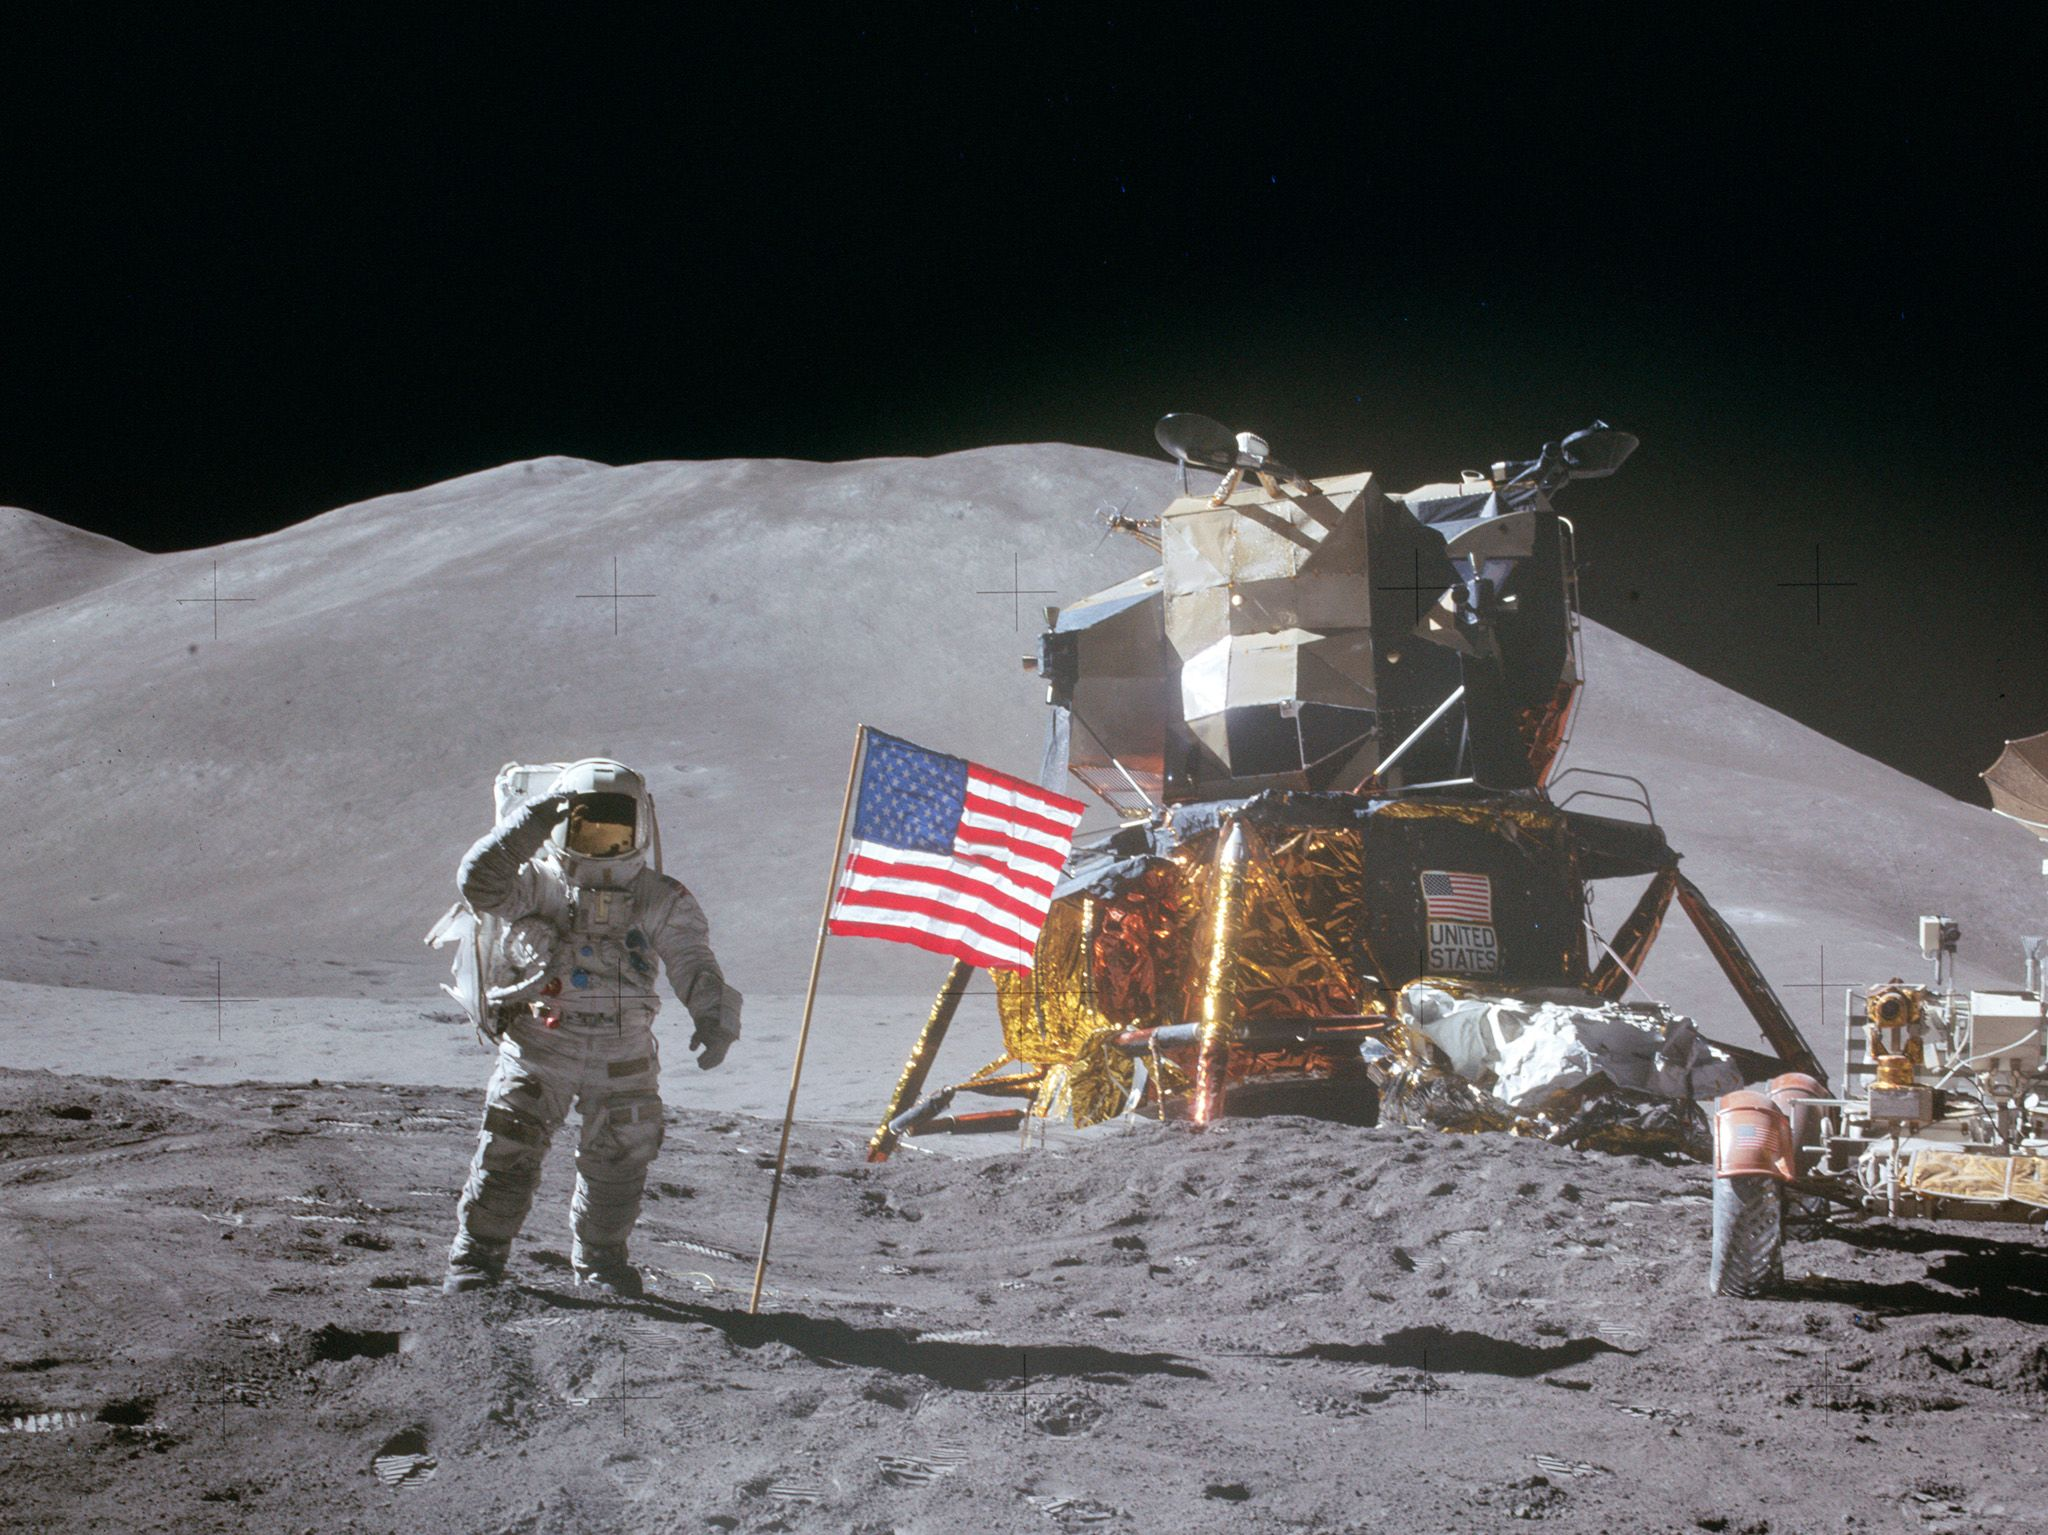 David Scott on Moon during Apollo 15.  This image is from Apollo: Missions to the Moon. [Photo of the day - 七月 2019]